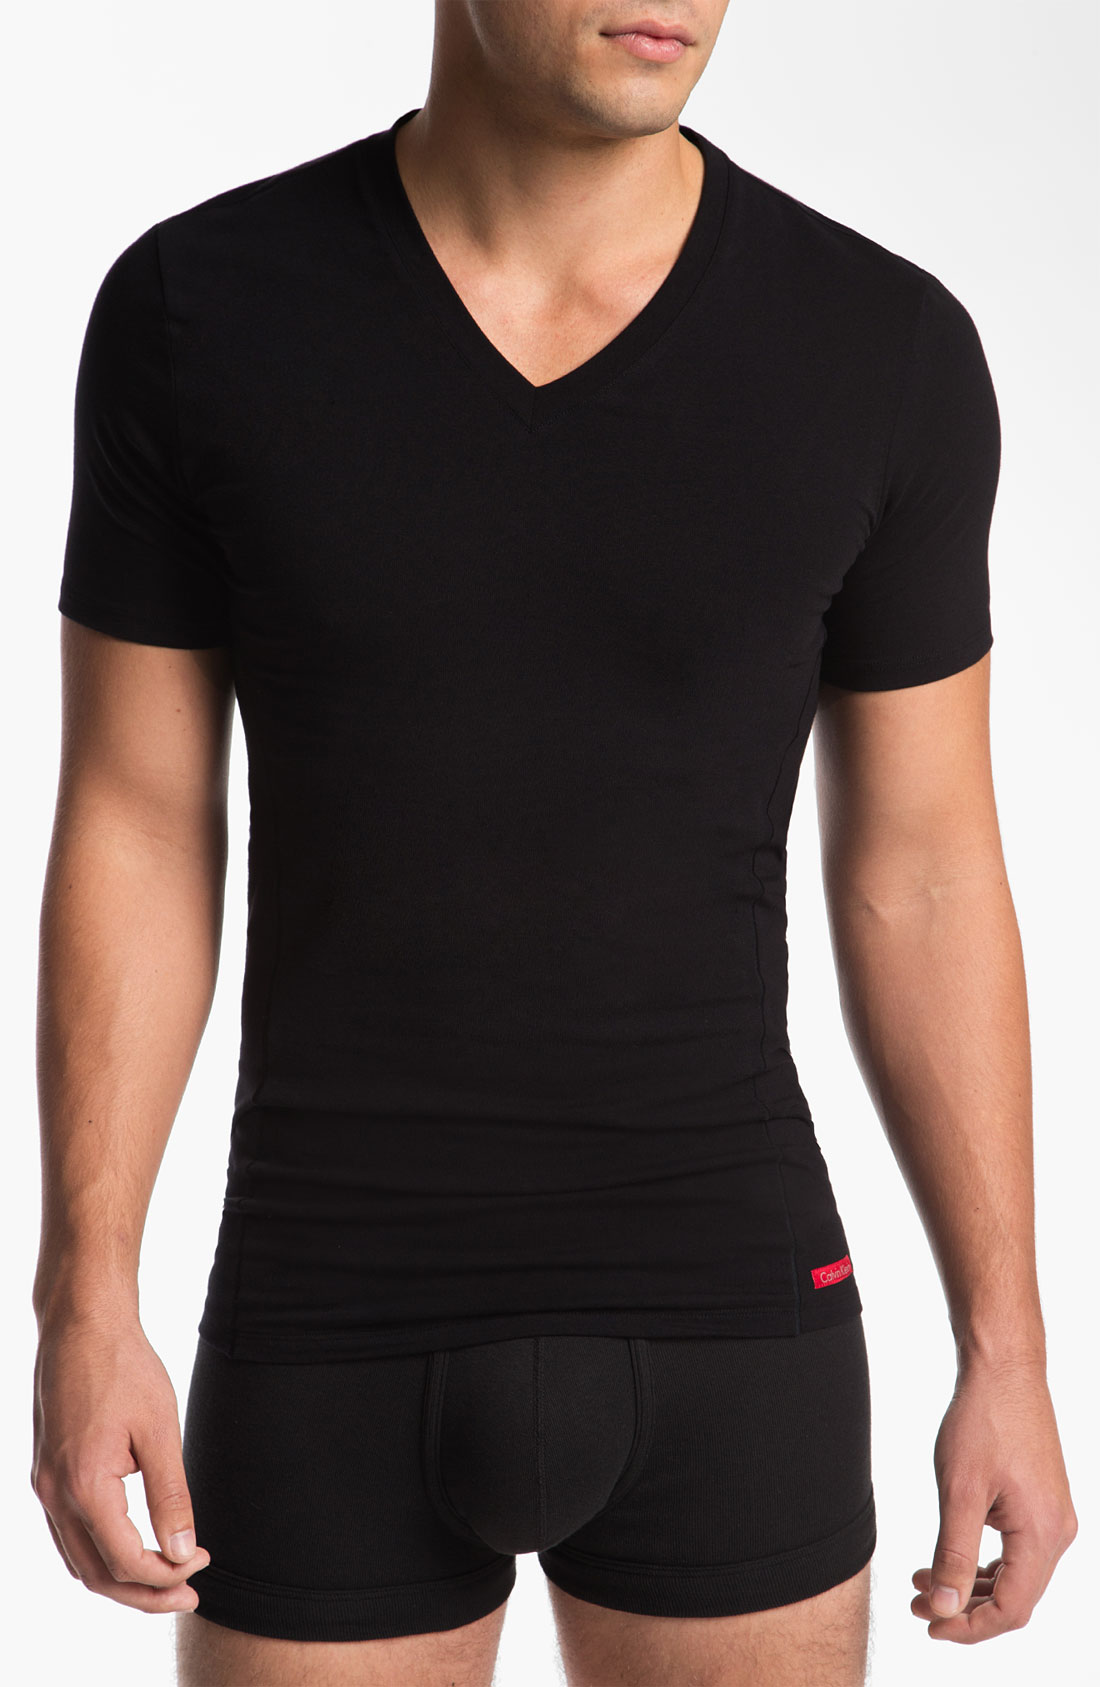 Calvin klein pro stretch slim fit vneck tshirt in black for Calvin klein slim fit stretch shirt